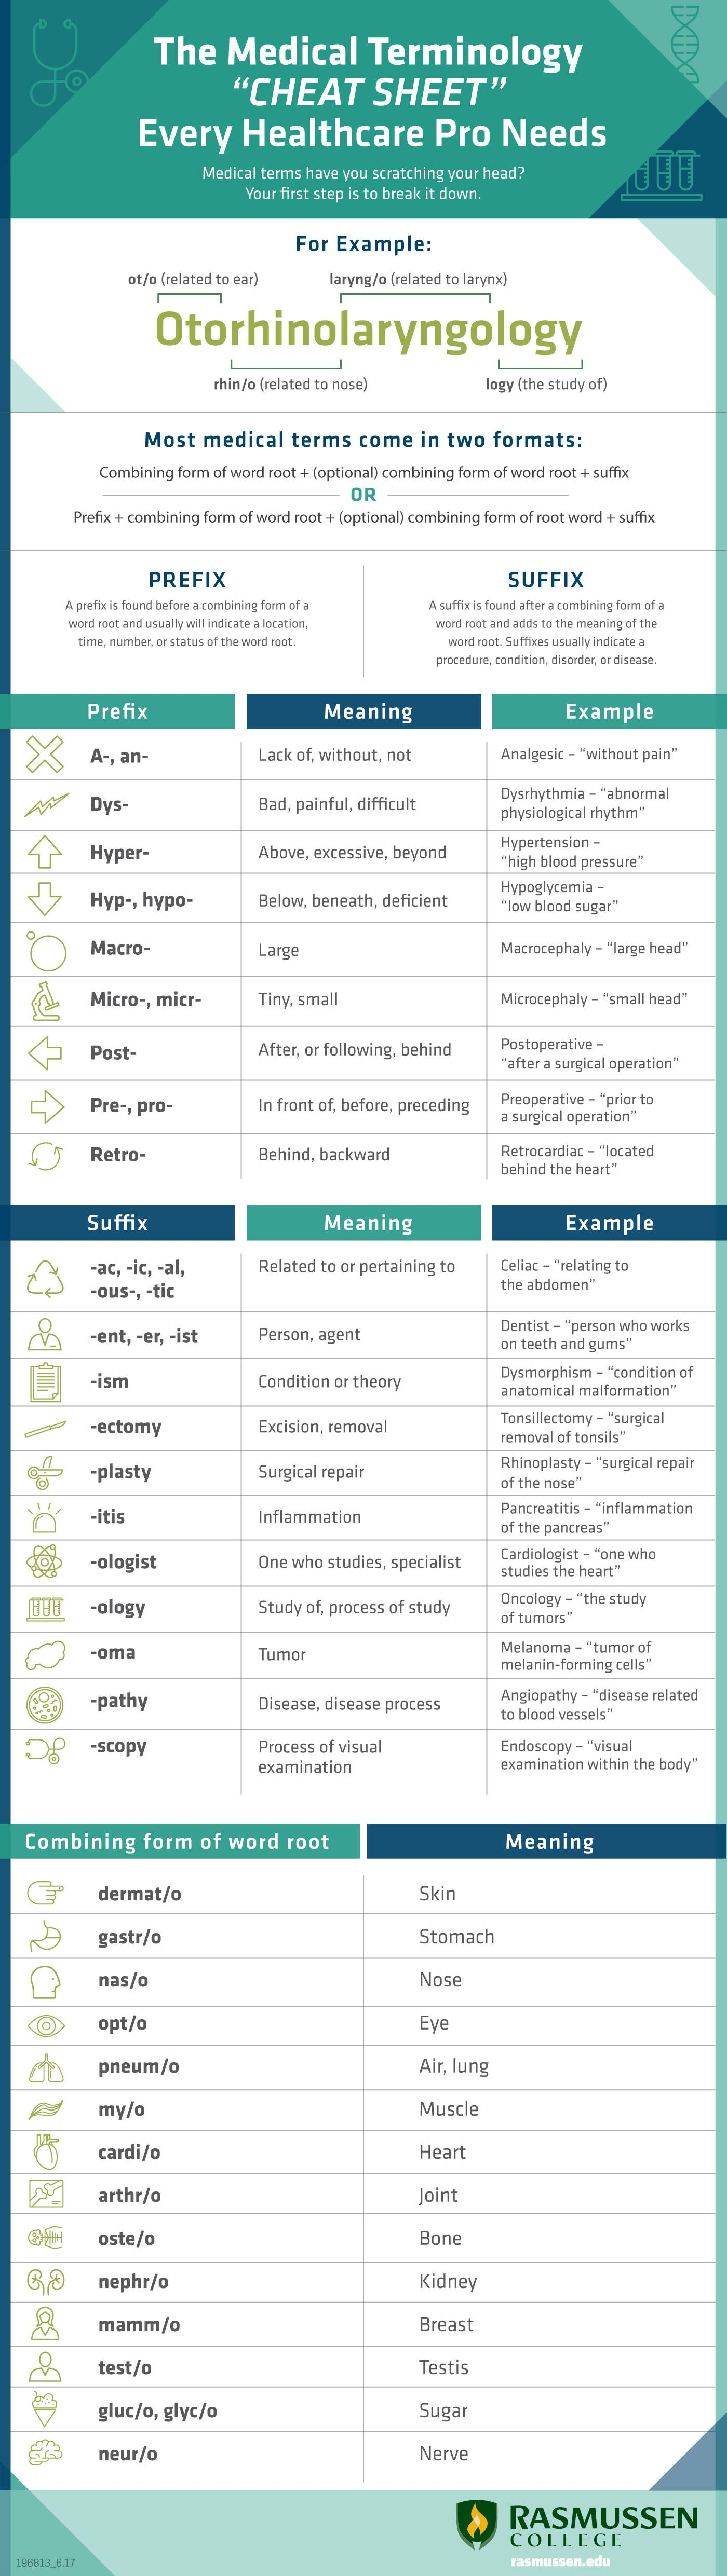 "The Medical Terminology ""Cheat Sheet"" Every Healthcare Pro"